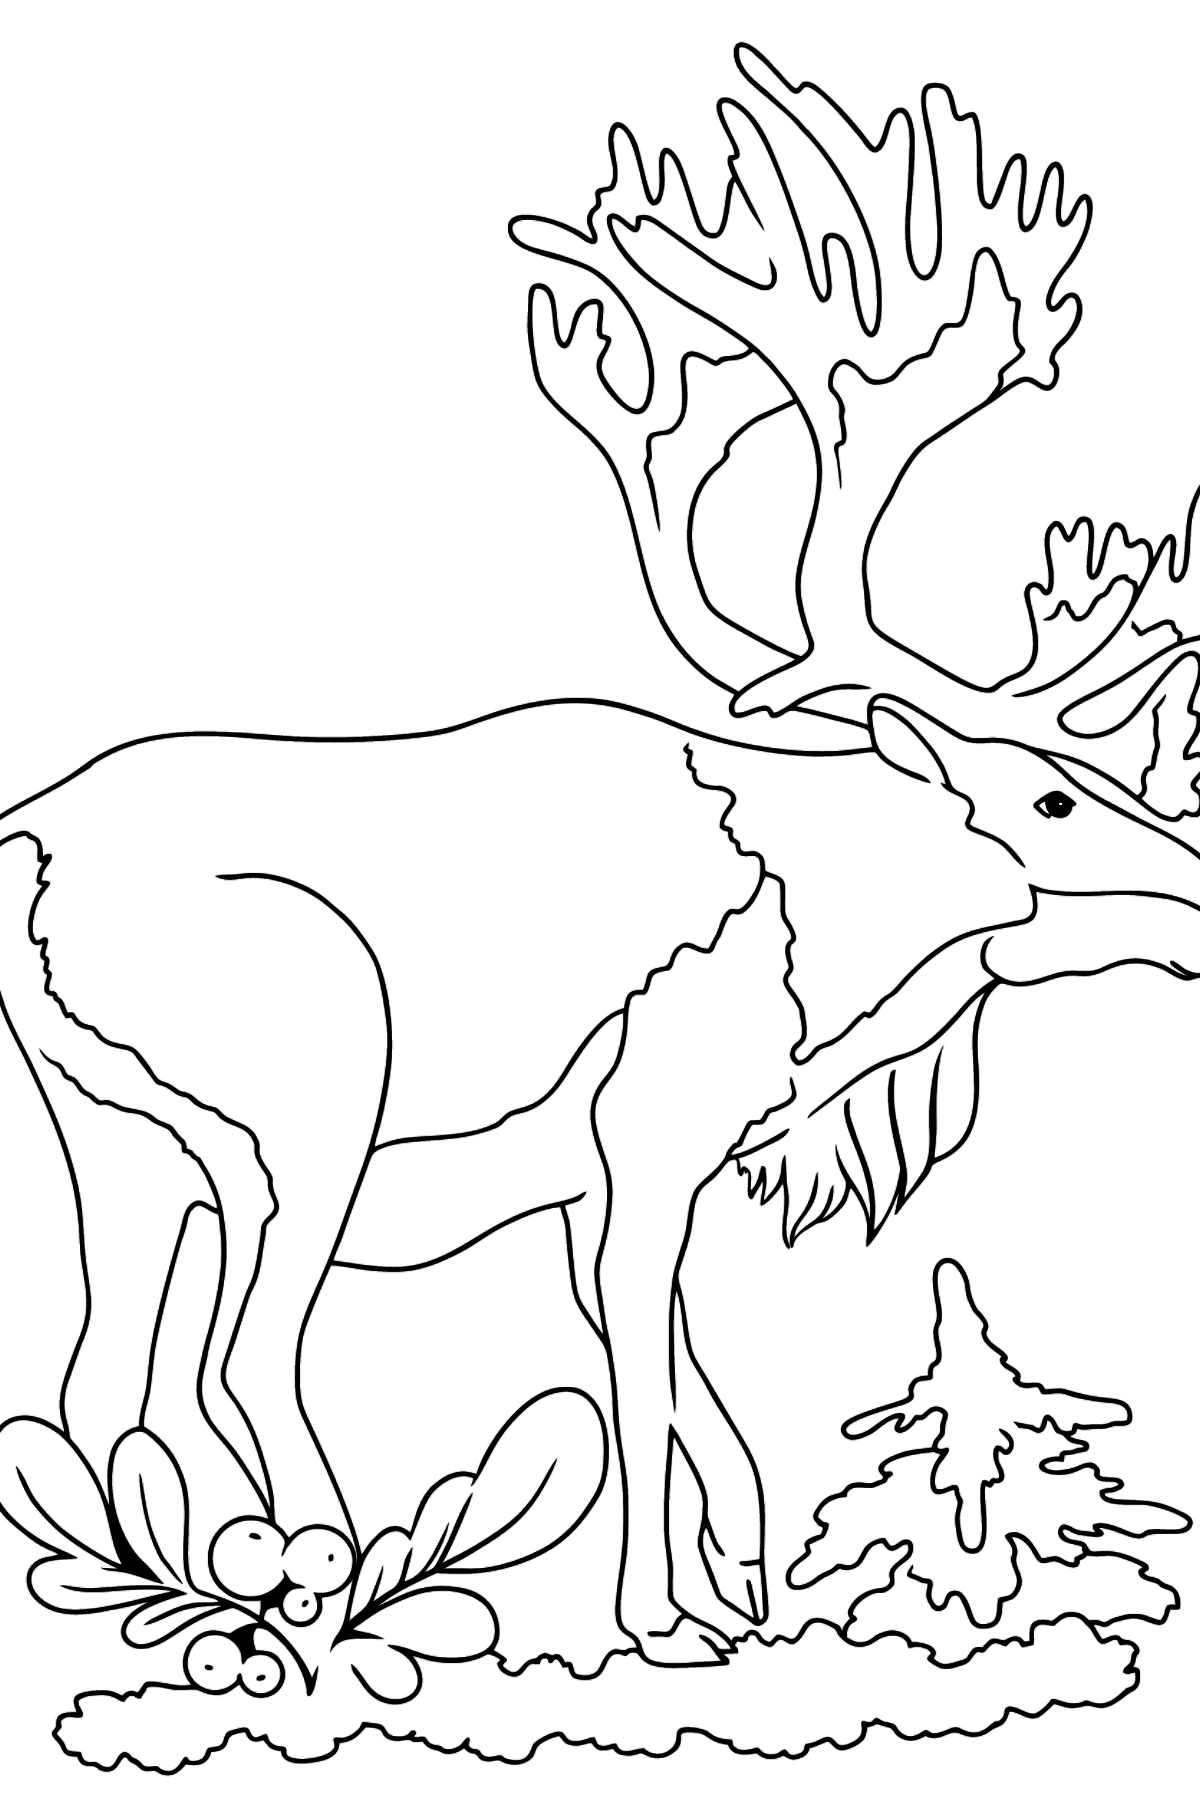 Coloring Page - A Deer with Beautiful Antlers - Coloring Pages for Kids